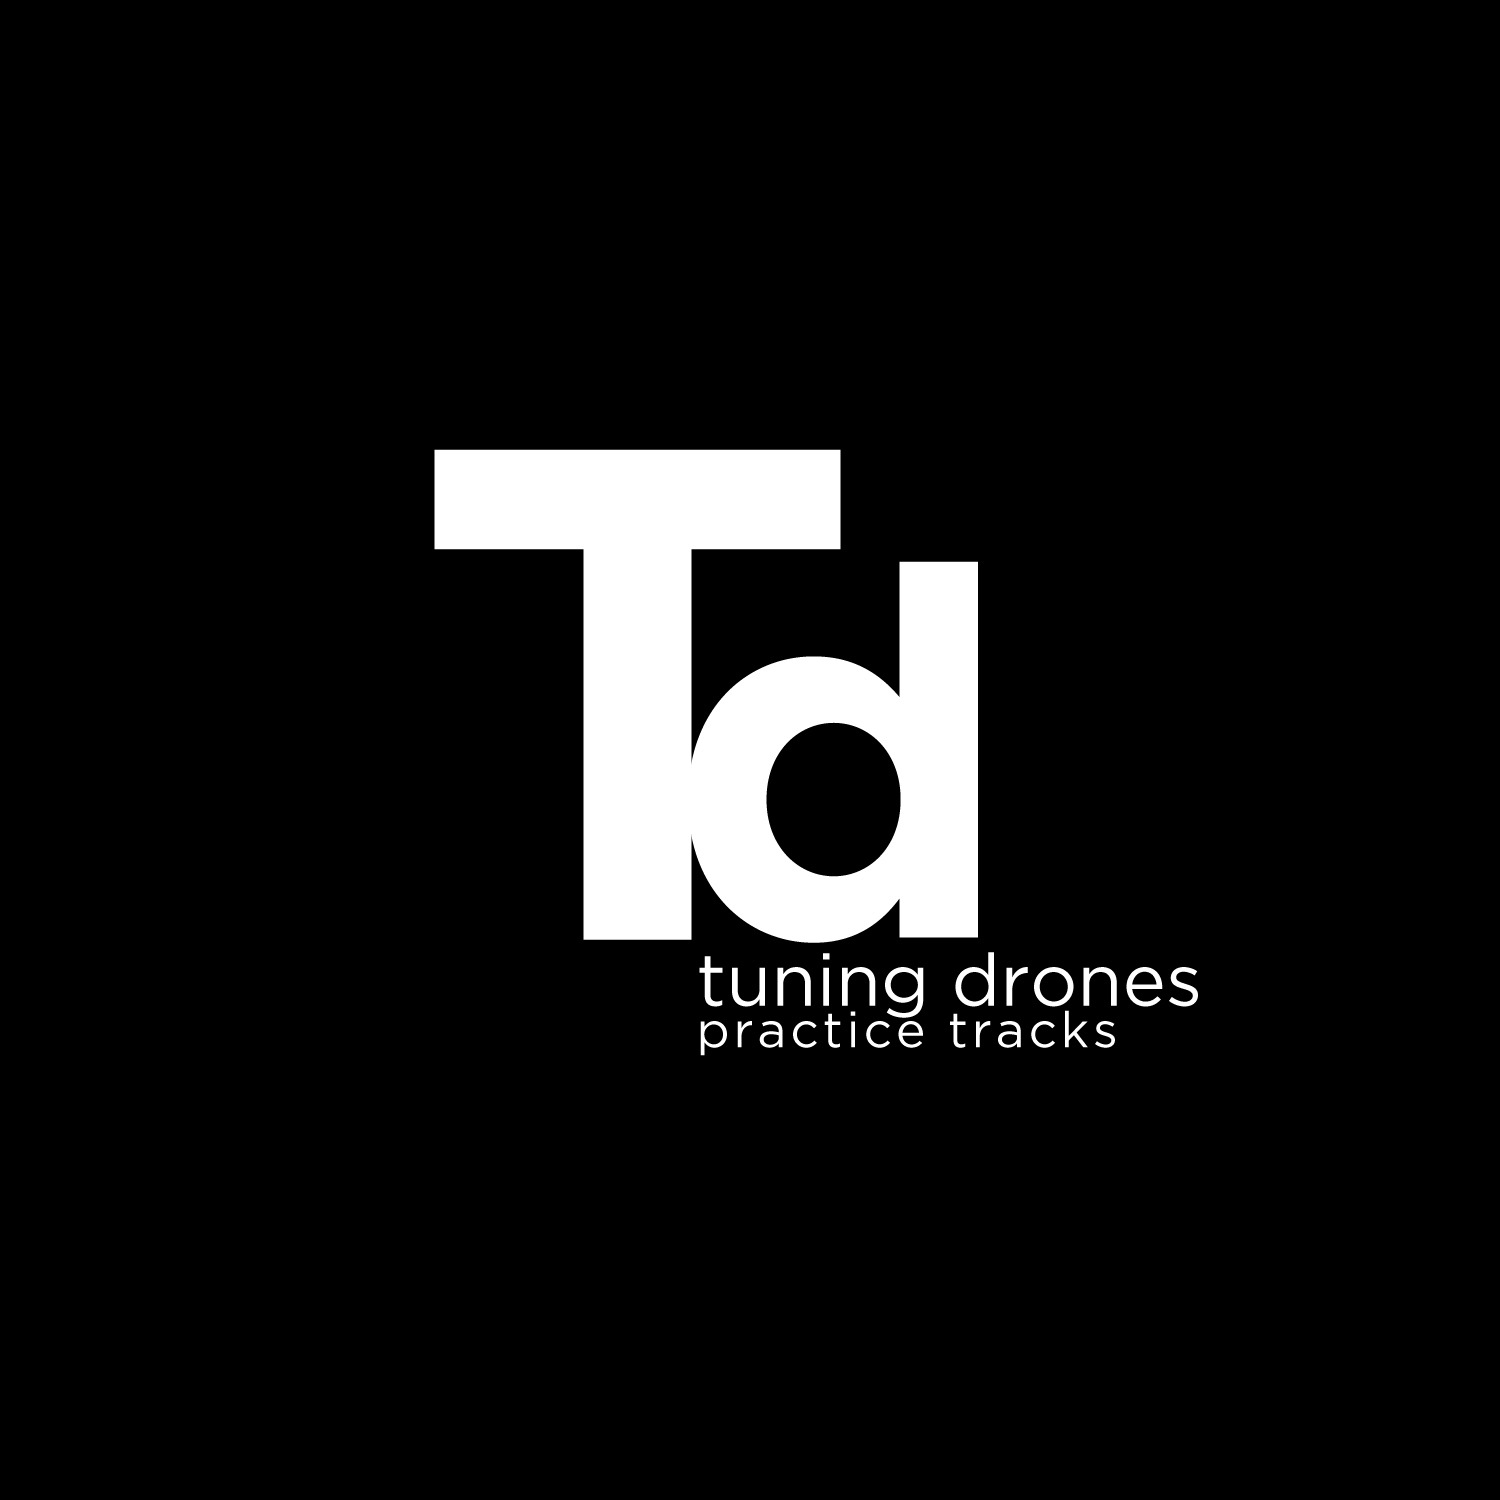 Drone Tracks (to Improve your tuning)